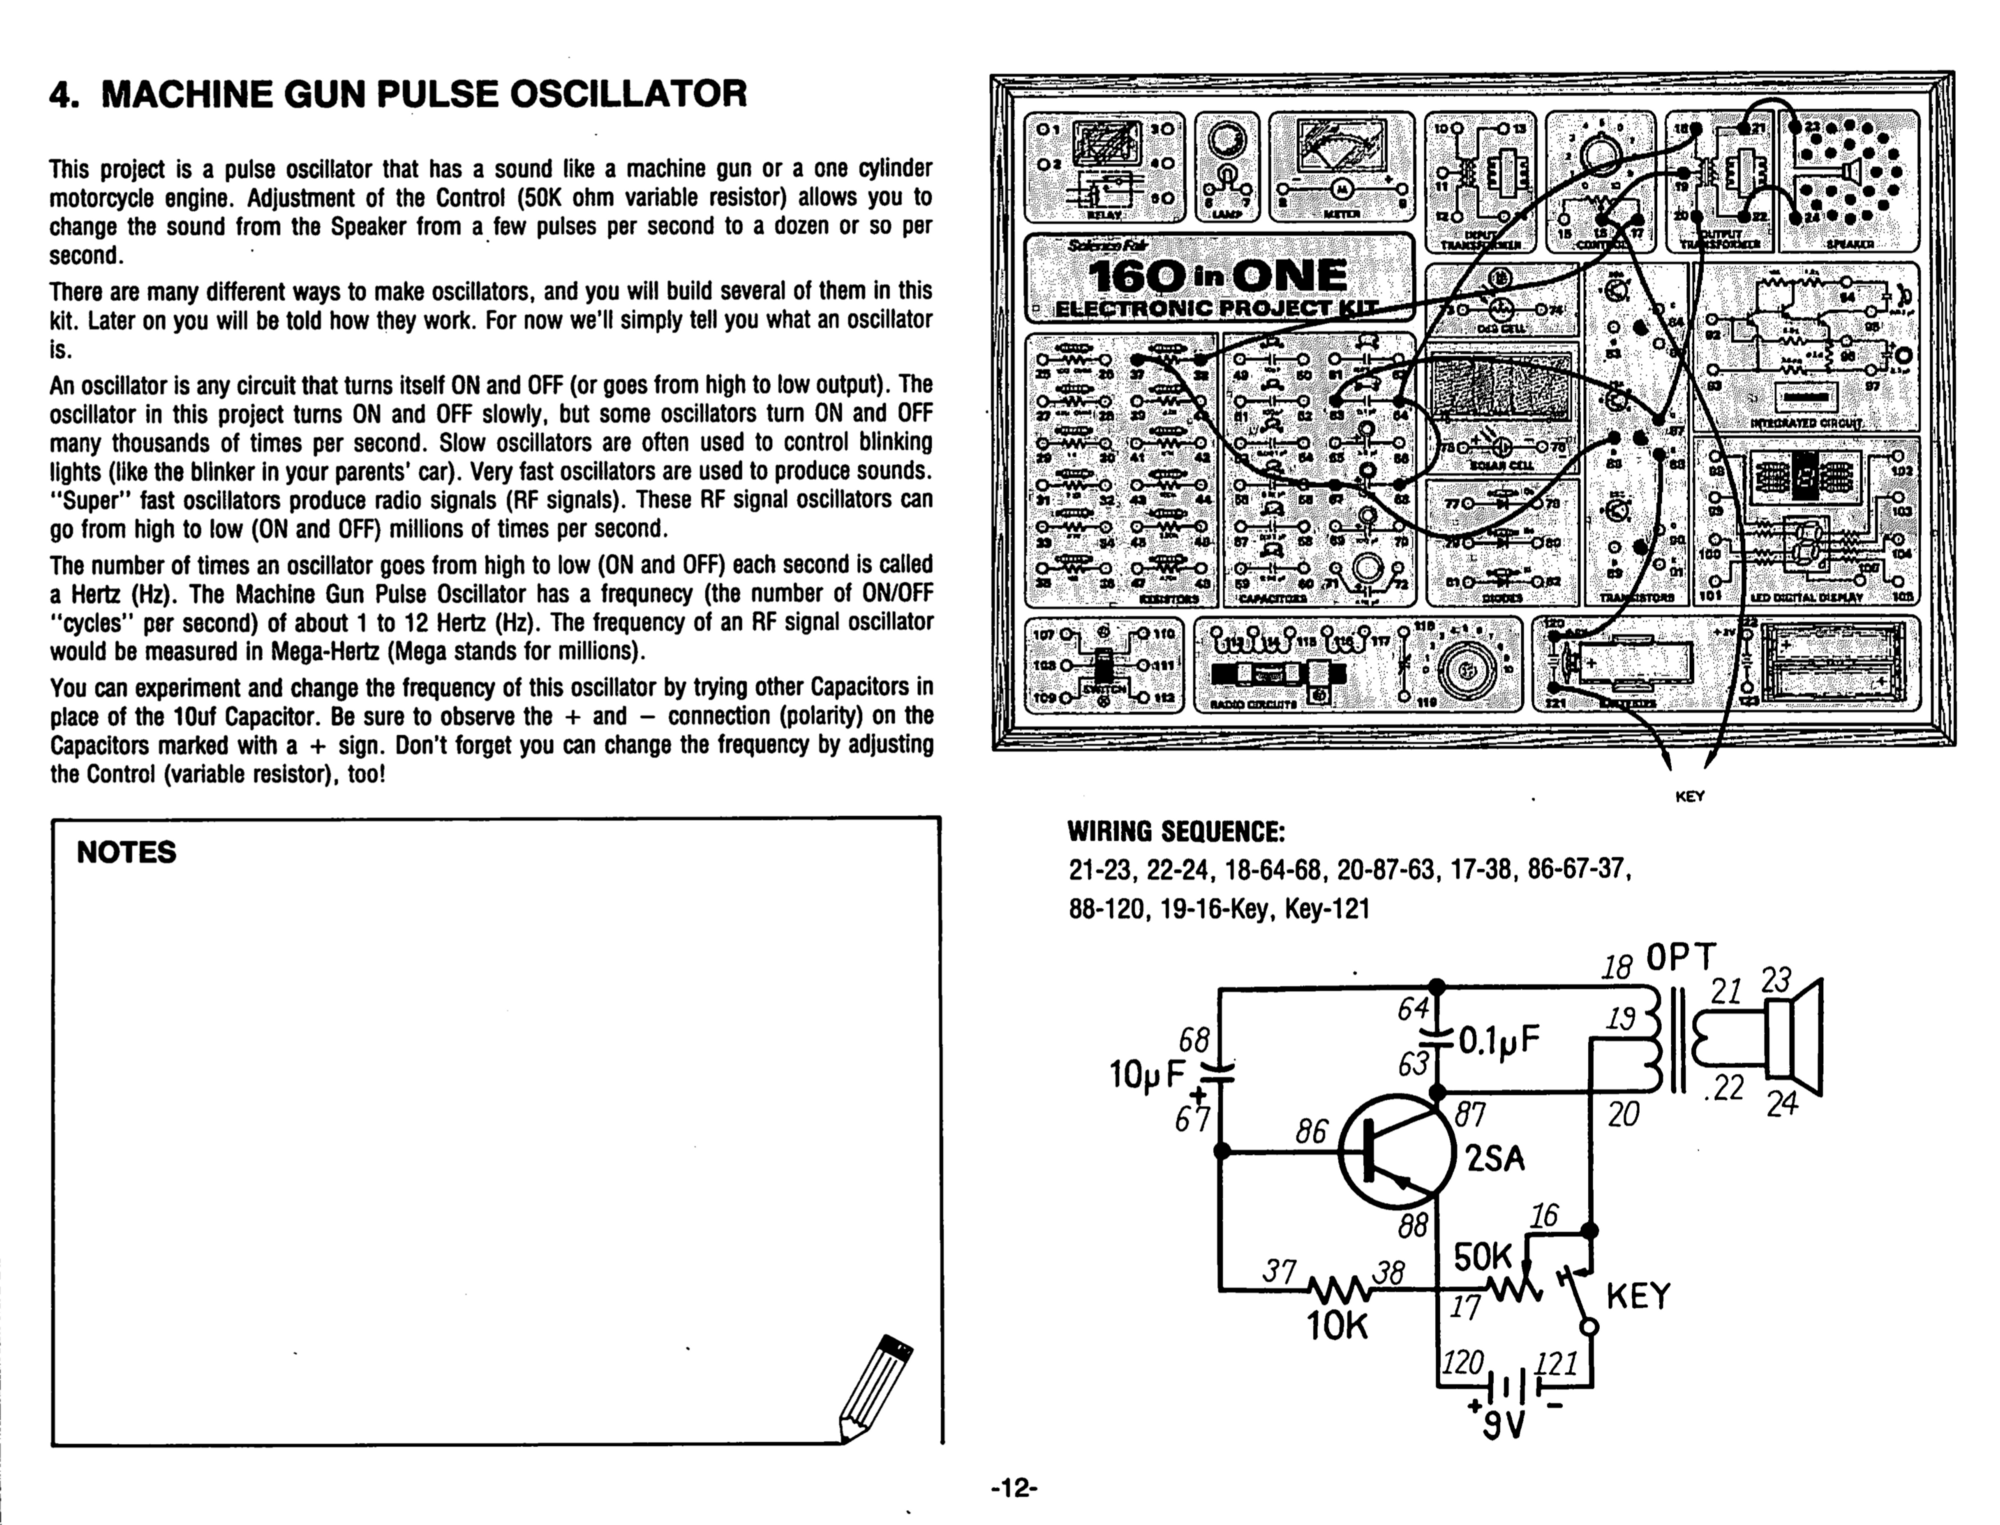 Electronic Project Kits Hands On With A Vintage 160 In 1 The Circuit Shown Is Most Interesting Of Several Drum Oscillators Now That Power Connected Working Used Fresh 9v Battery I Proceeded To Wire Up First Starting 4 Machine Gun Pulse Oscillator